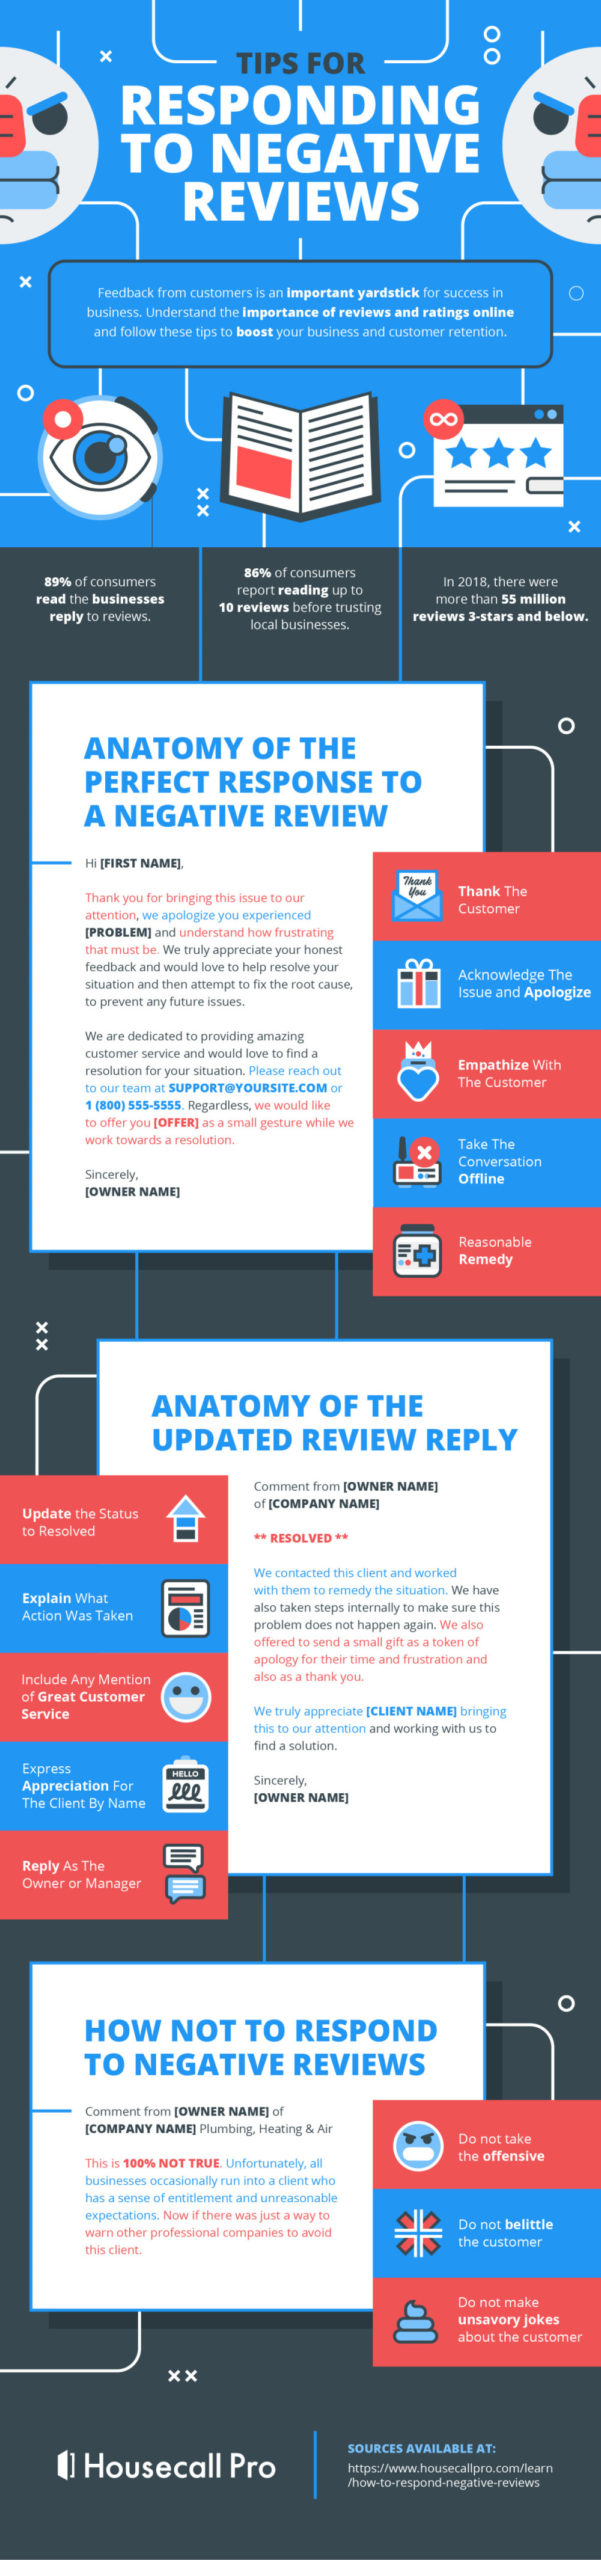 Infographic: How to Manage Negative Online Reviews